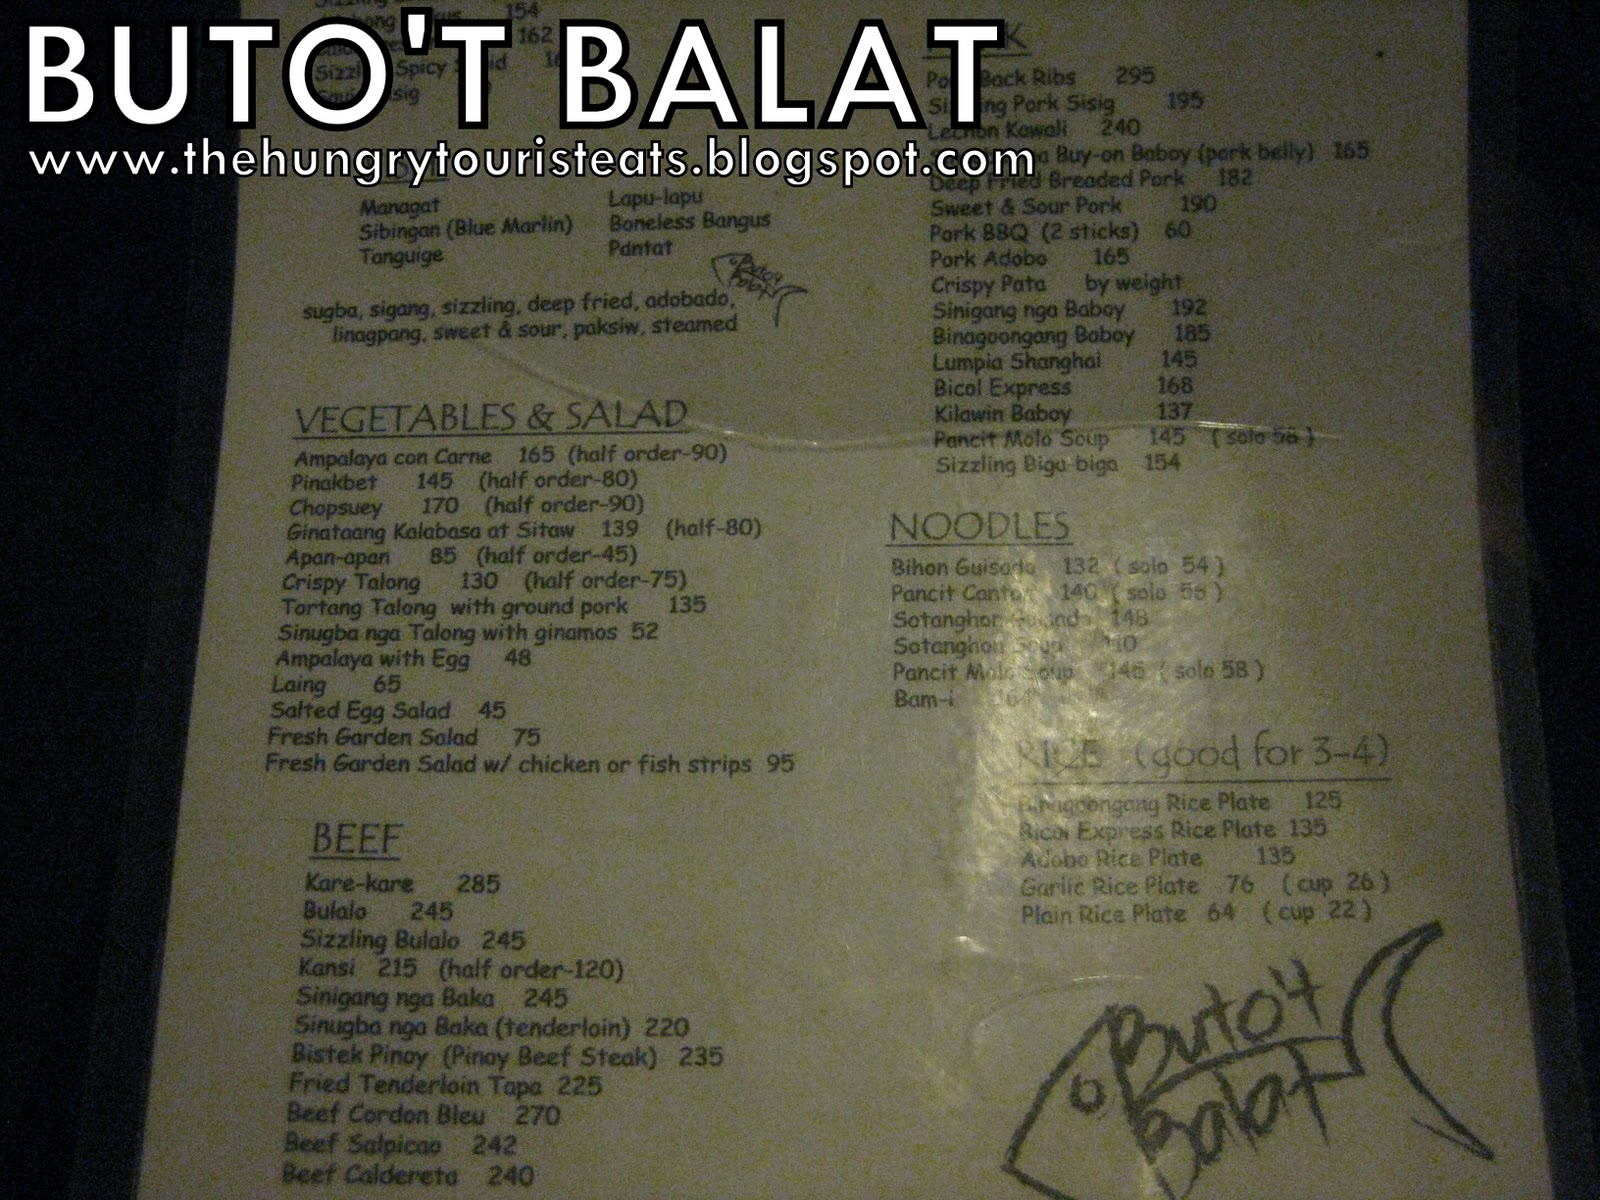 The Hungry Tourist Eats: Buto\'t Balat